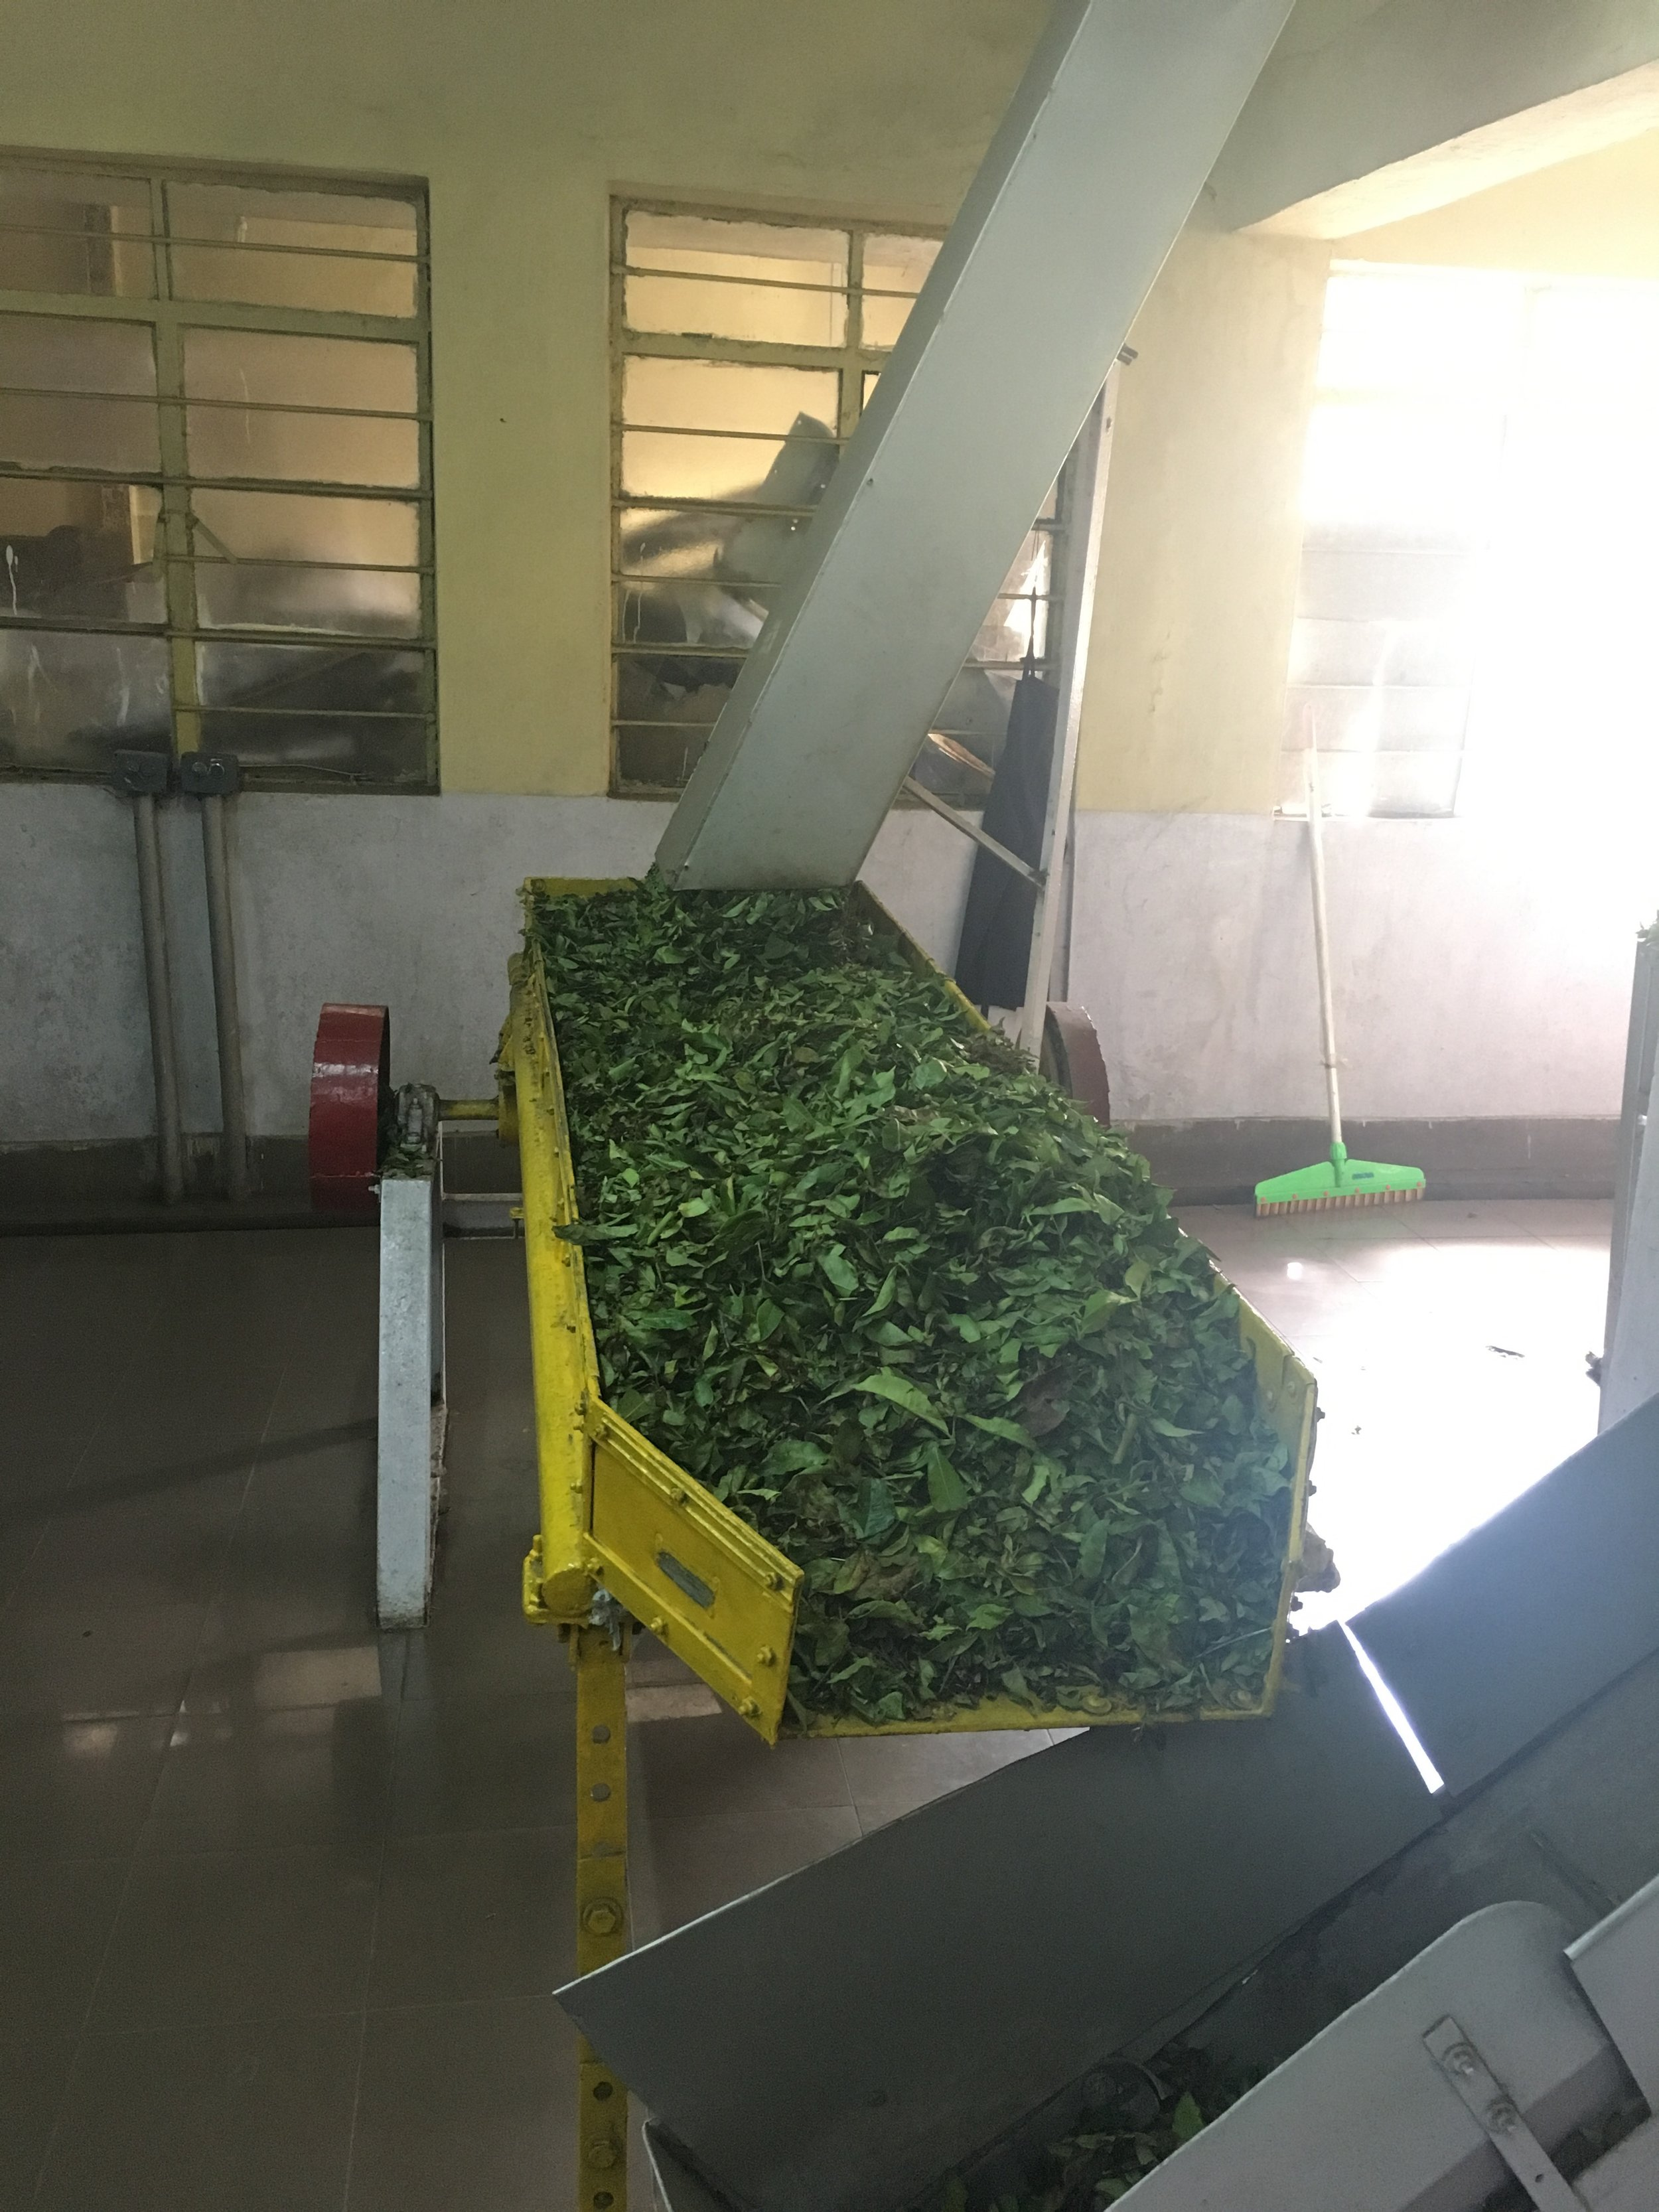 Tea leaves on their way to cutting, rolling, oxidizing, and drying.